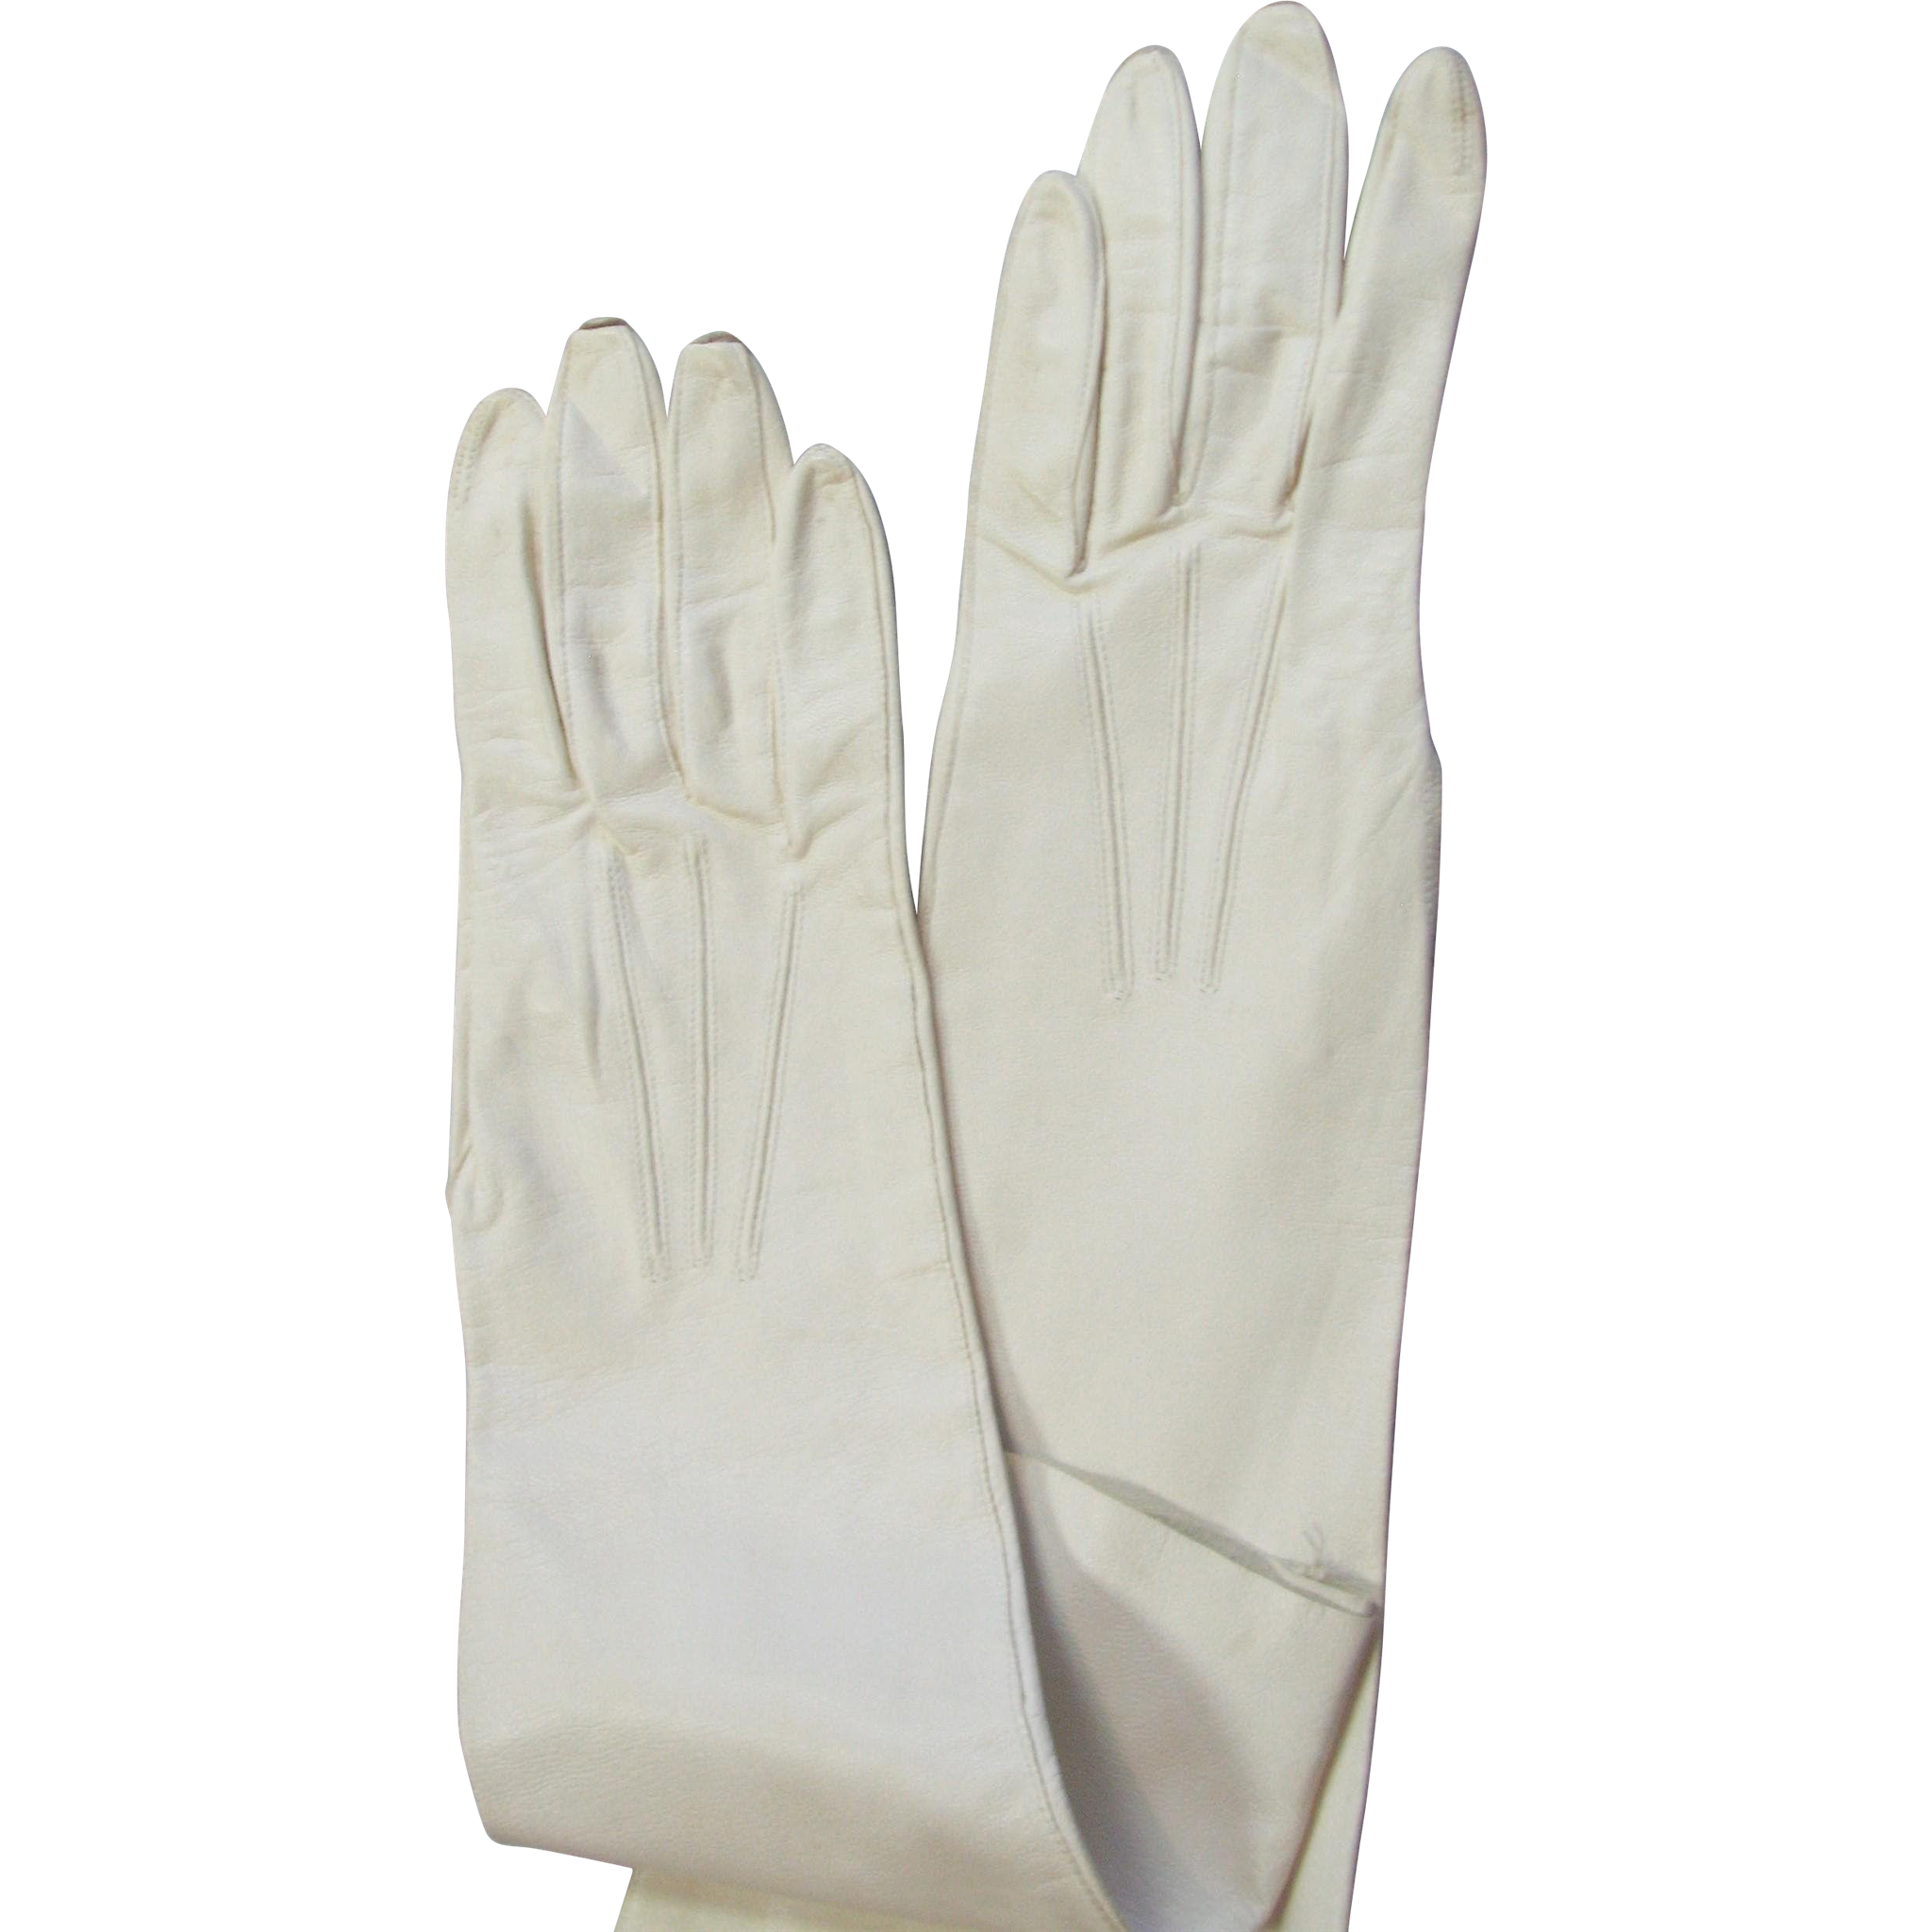 Lambskin, Sheepskin and Kid Leather Gloves for Men at Leather Gloves Online. More >> Soft, pliable, supple Lambskin and Sheepskin are THE choice for fine quality gloves the world over Men's Knit Leather Palm Gloves with Thinsulate Lining MSRP $ $(39% off!) Item: PH © Leather Gloves Online.